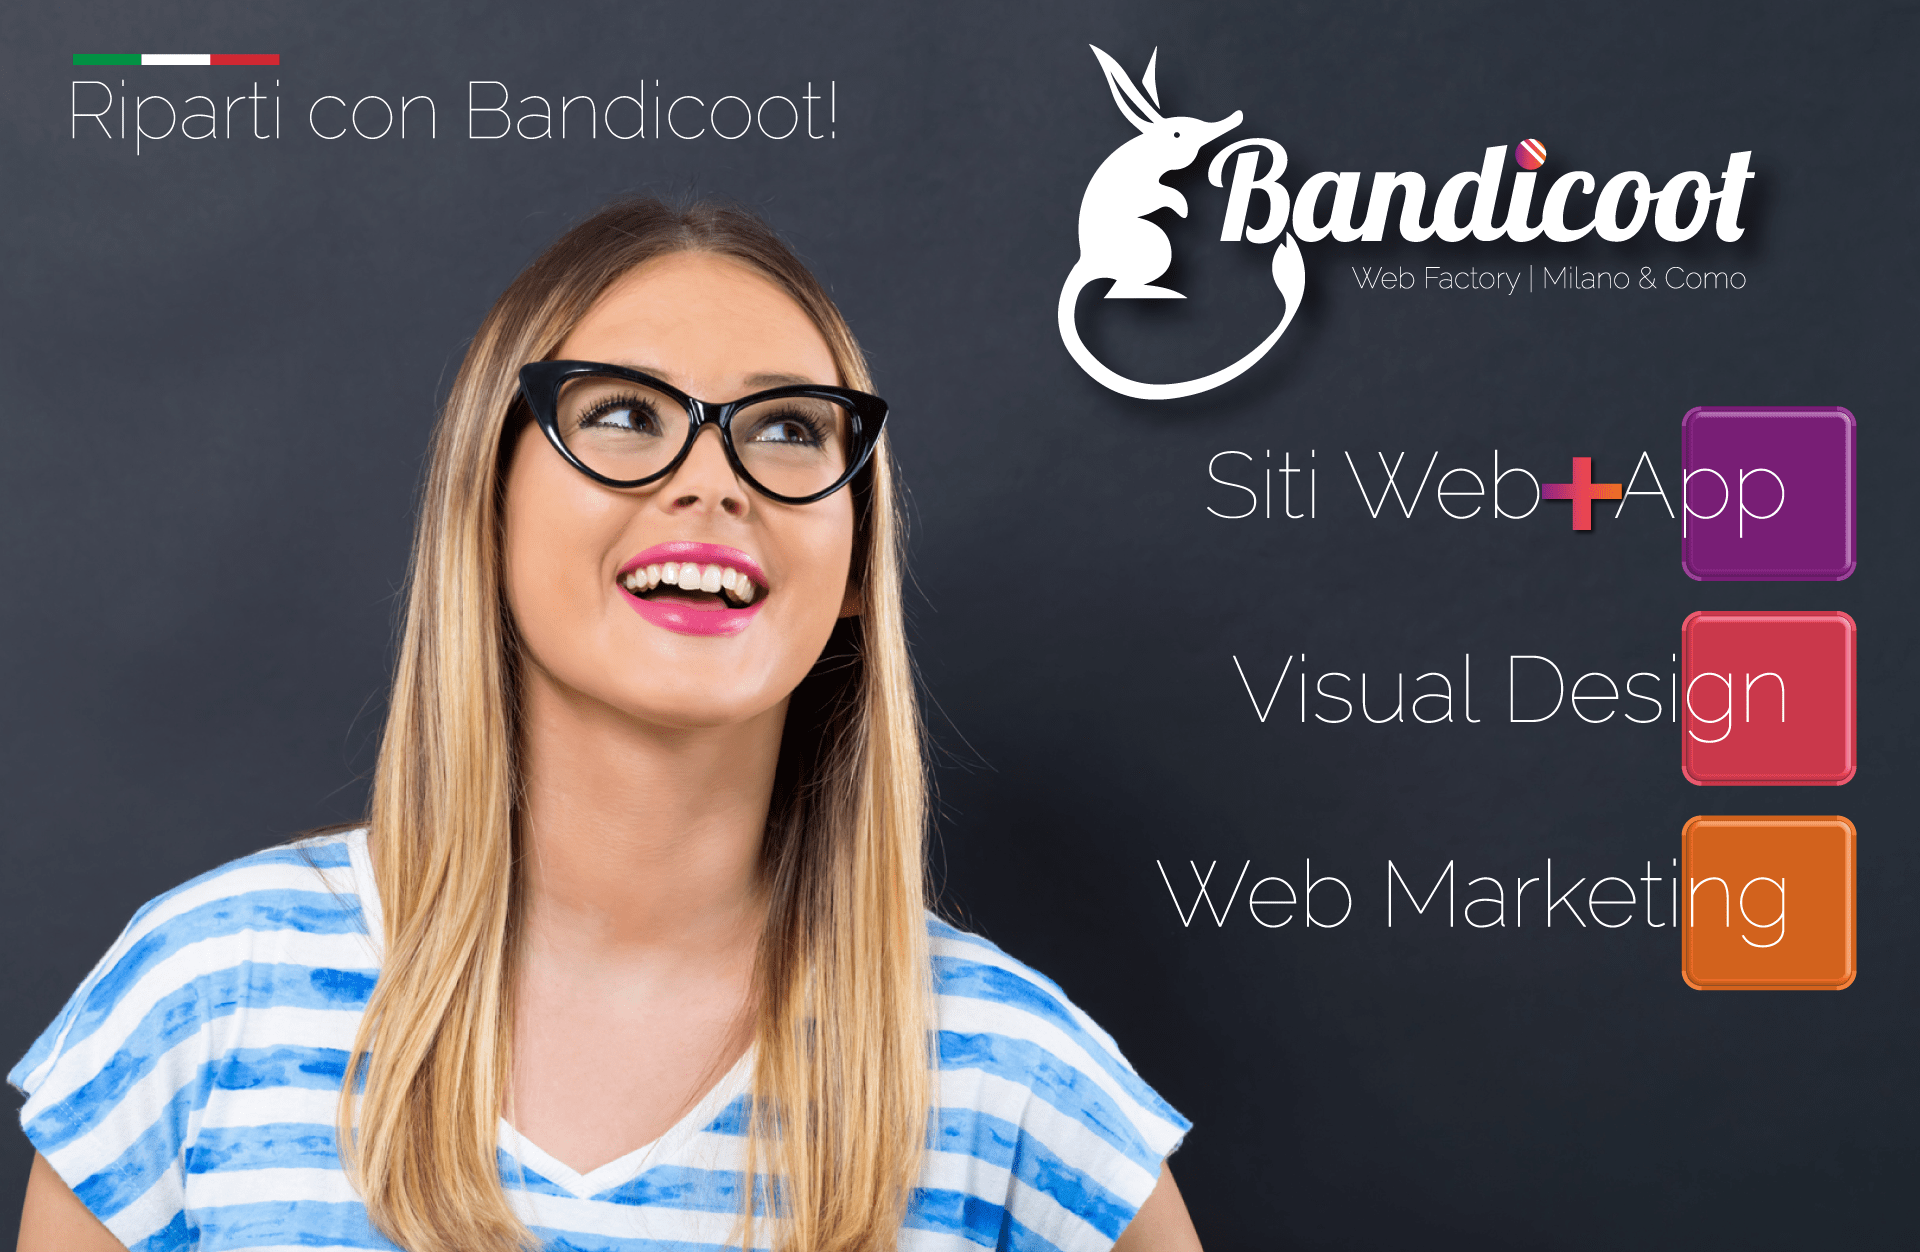 Ragazza con occhiali guarda logo di Bandicoot Web Factory Milano & Como con i suoi servizi principali: siti web, App, visual design, web marketing